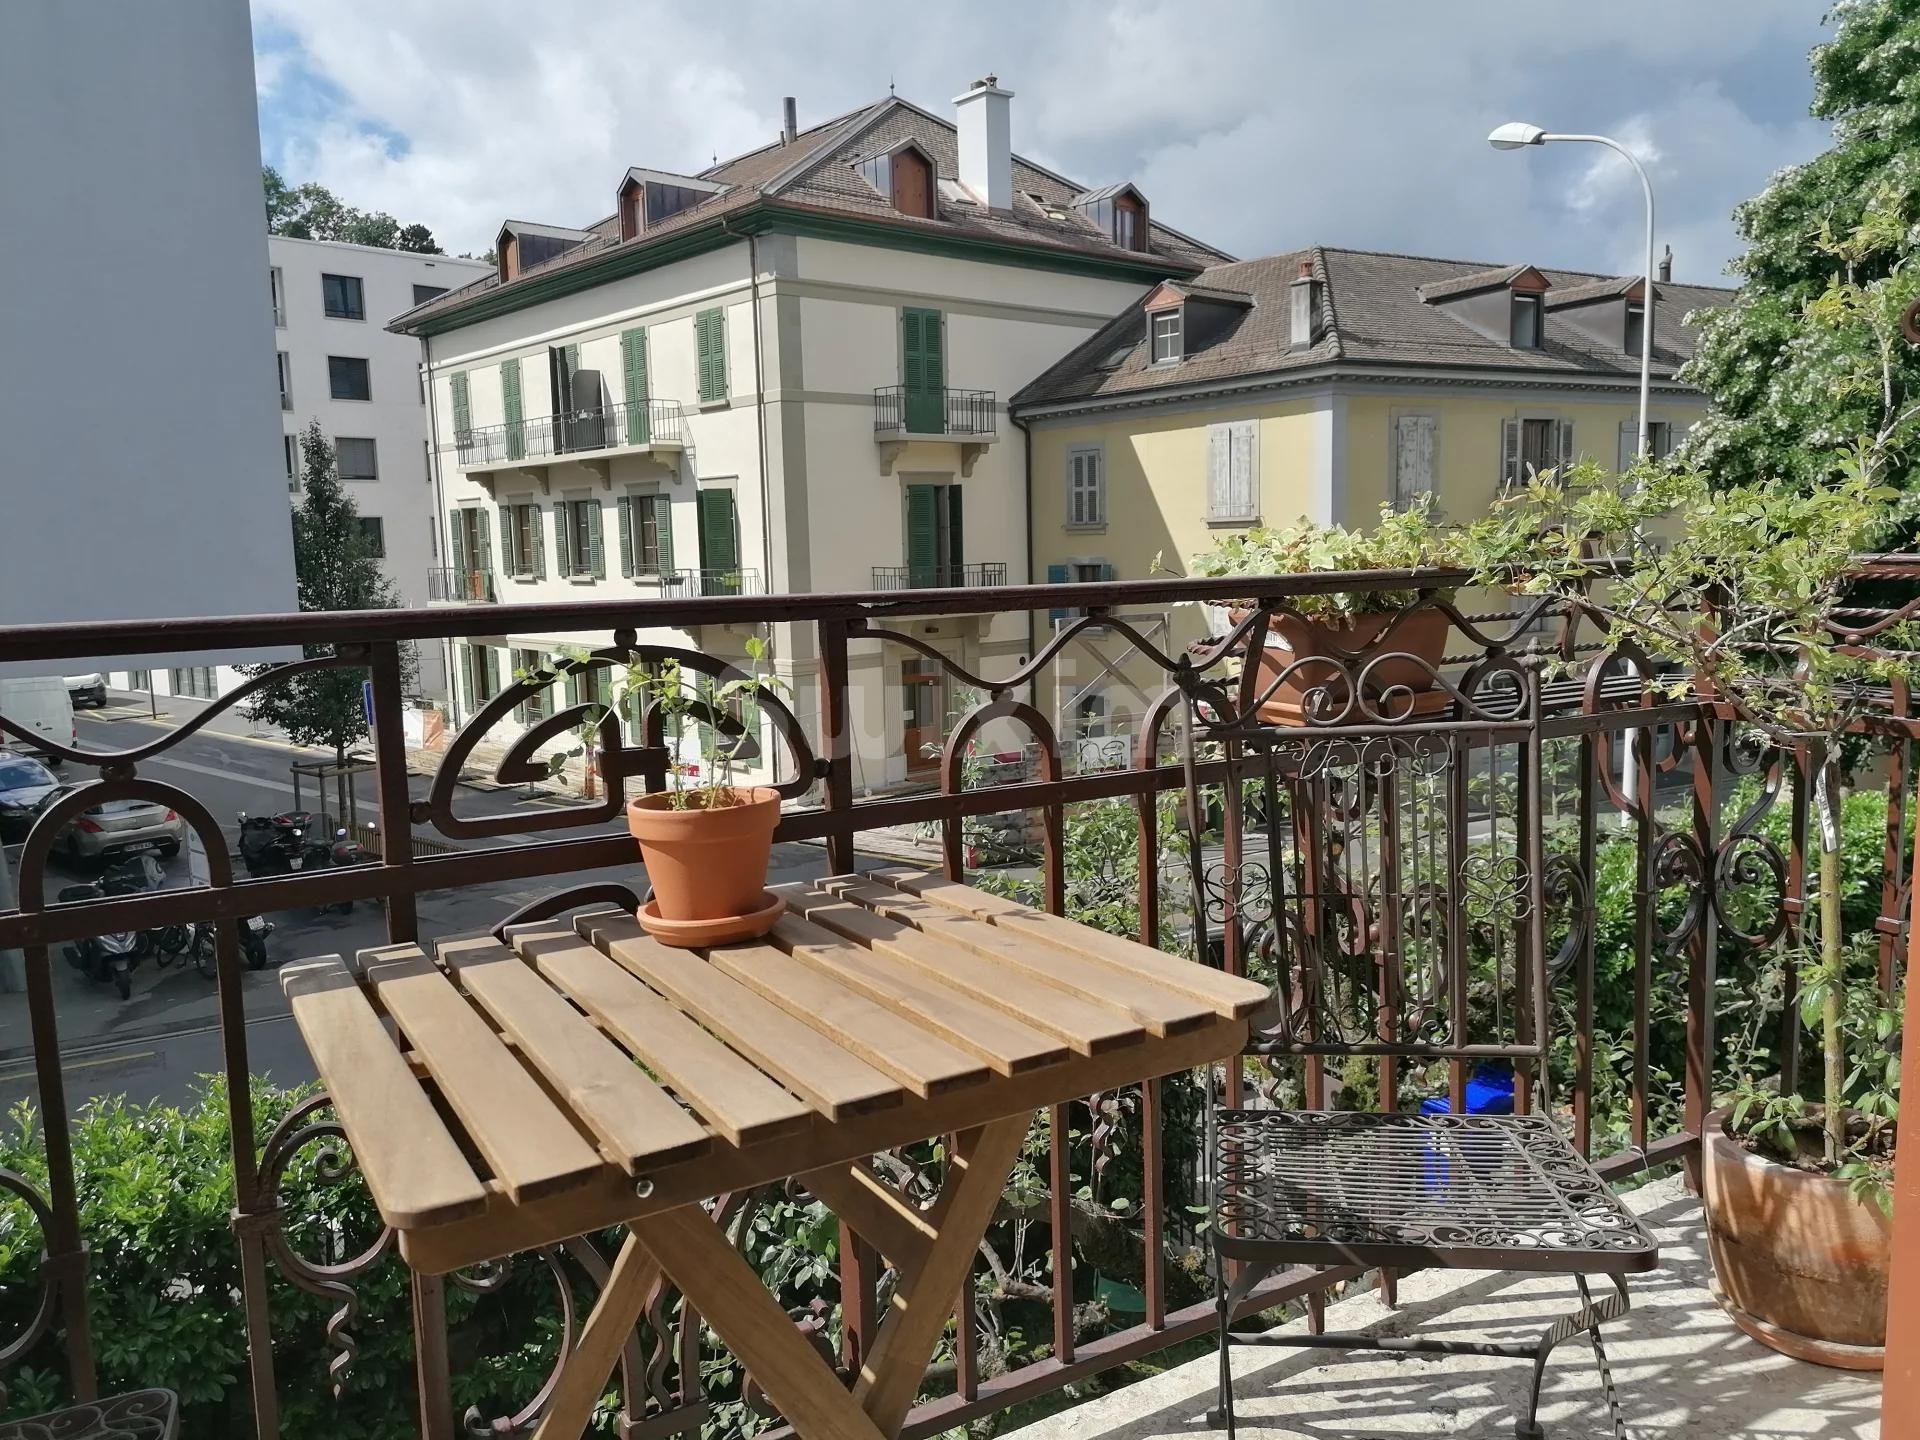 Alquiler Piso - Carouge - Suiza